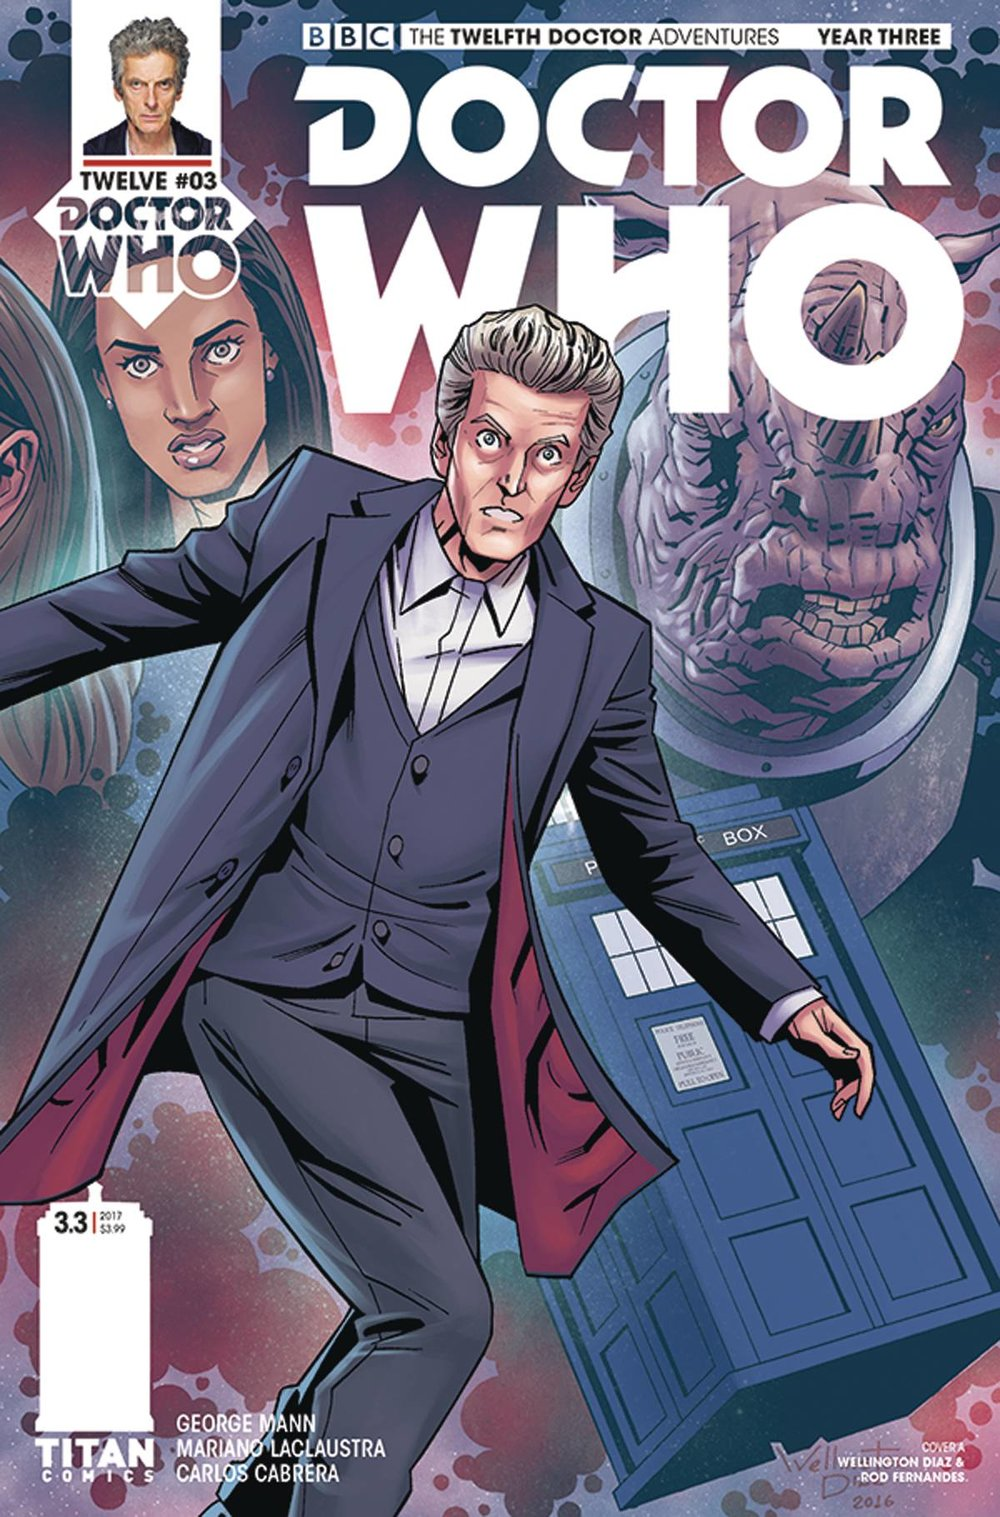 DOCTOR WHO 12TH YEAR THREE 3 CVR A ALVES.jpg